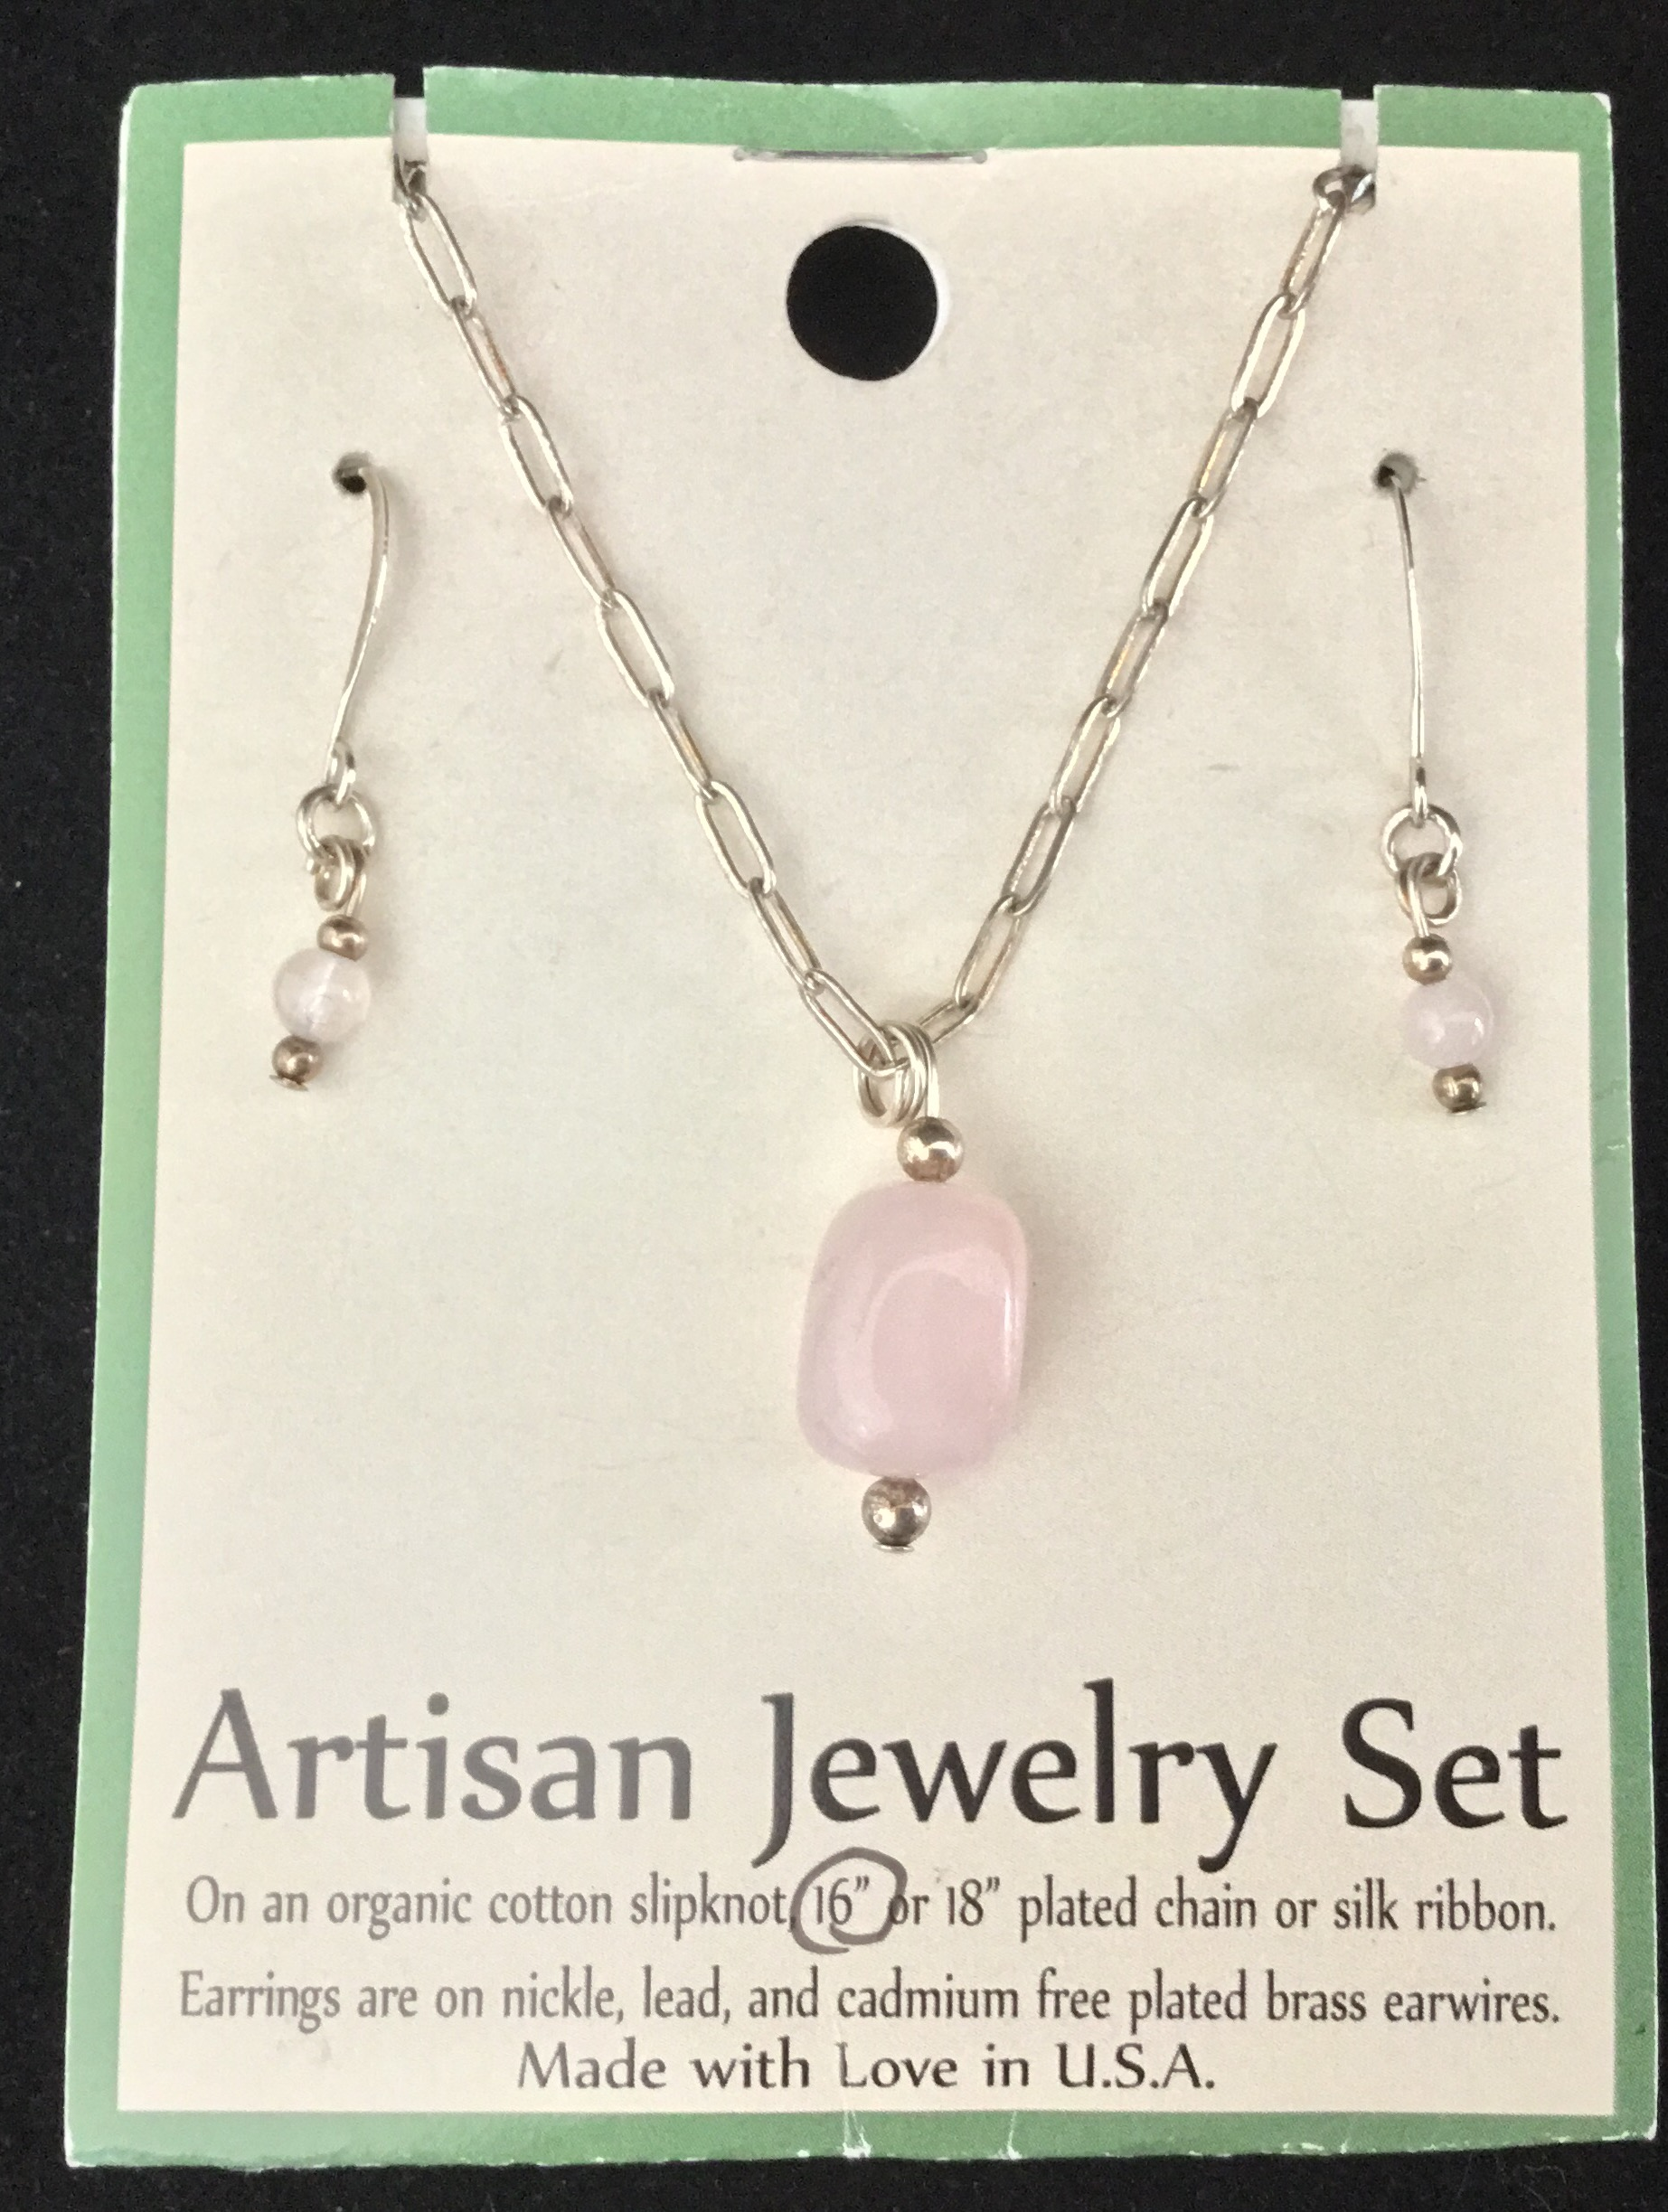 Artisan Jewelry Set, Rose Quartz Necklace and Earrings